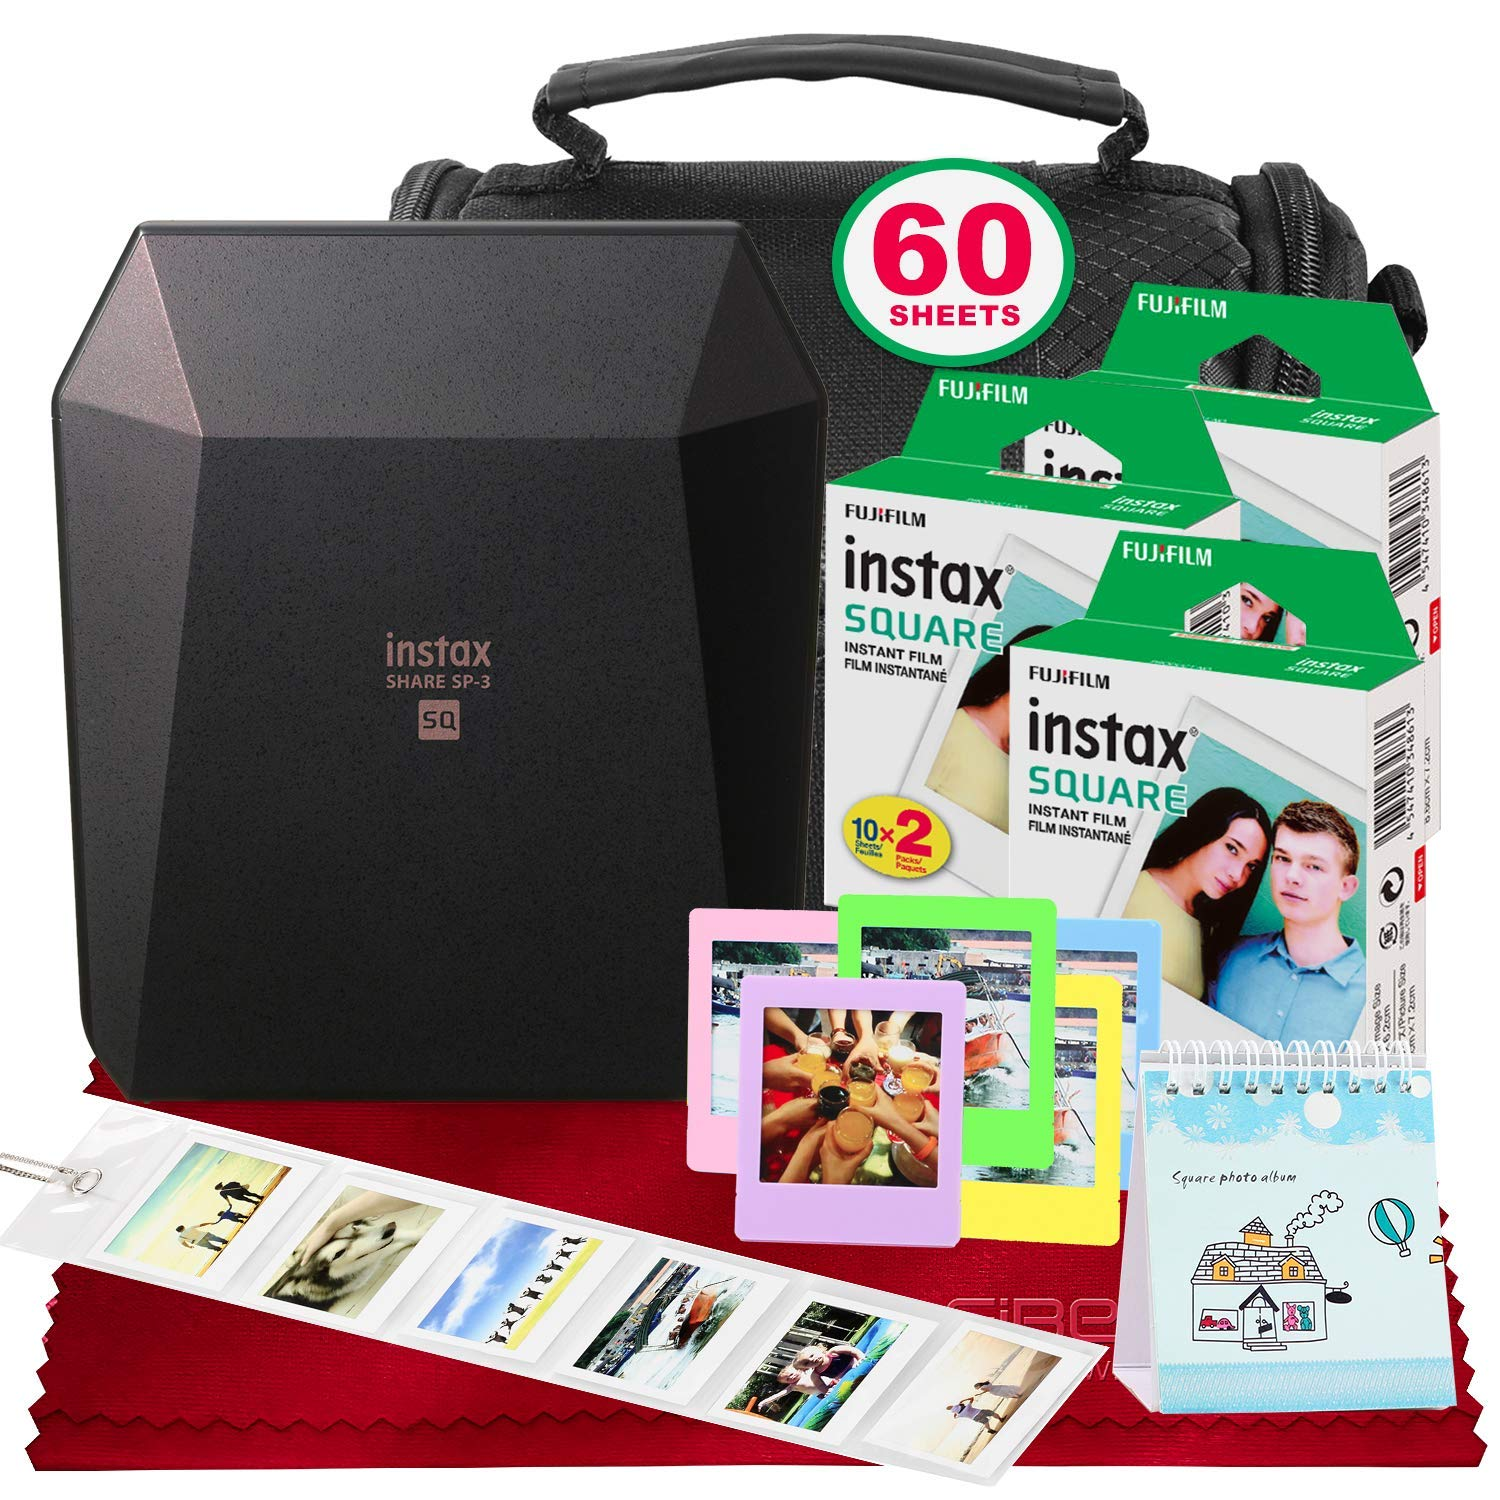 Fujifilm Instax Share SP-3 Smartphone Printer (Black) with 60 Sheets of Instant Square Film with Platinum Bundle (USA Warrantty) by Fujifilm